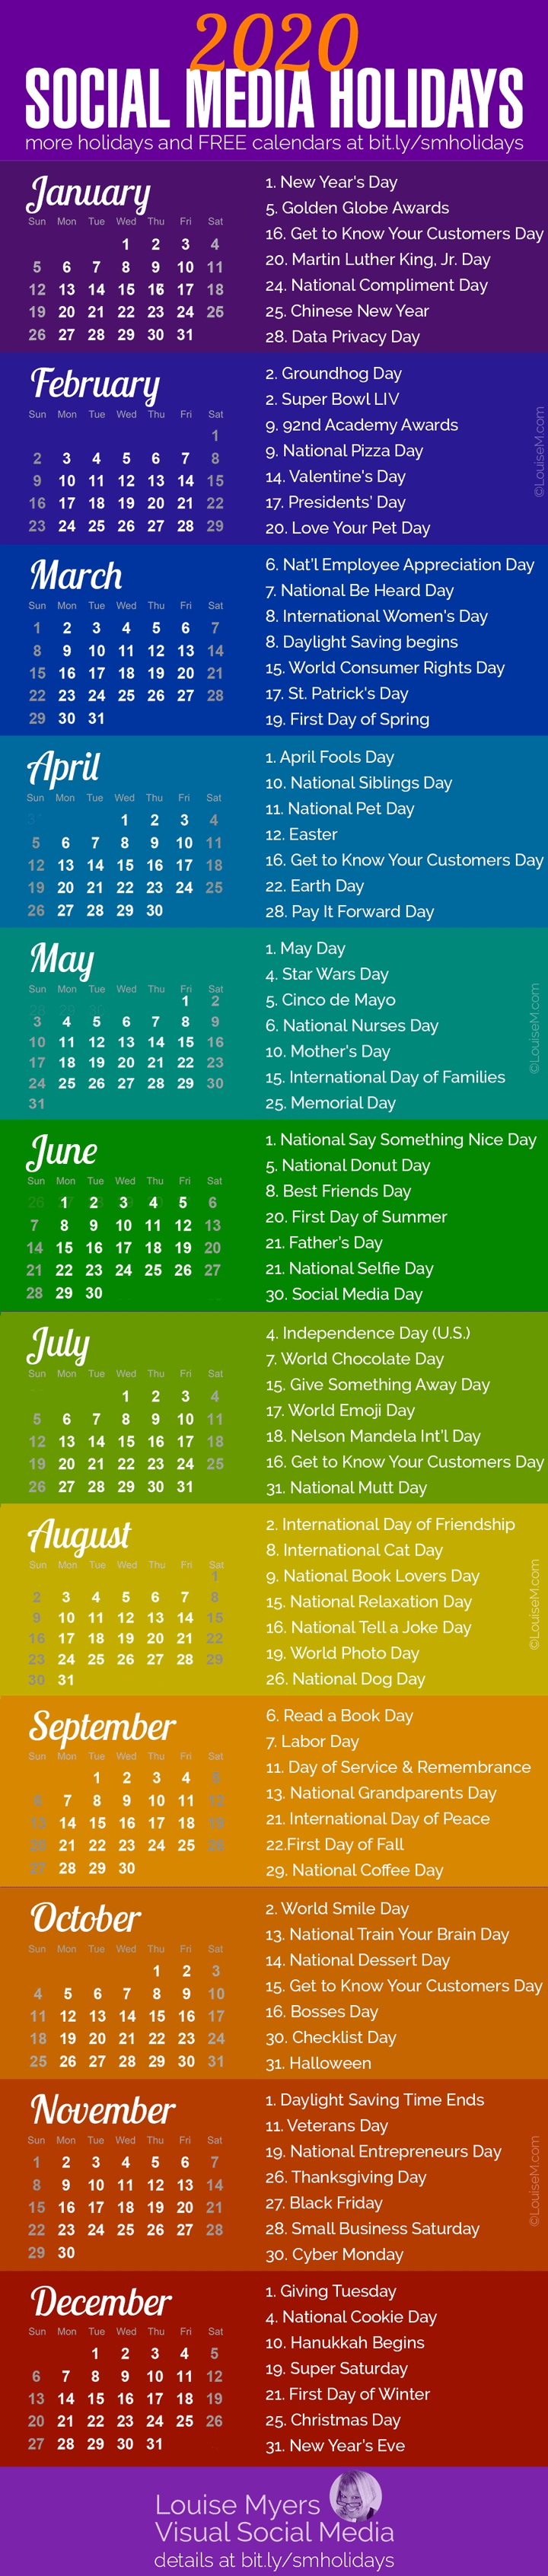 84 Social Media Holidays You Need In 2020: Indispensable! within National Day Calendar 2020 Printable List